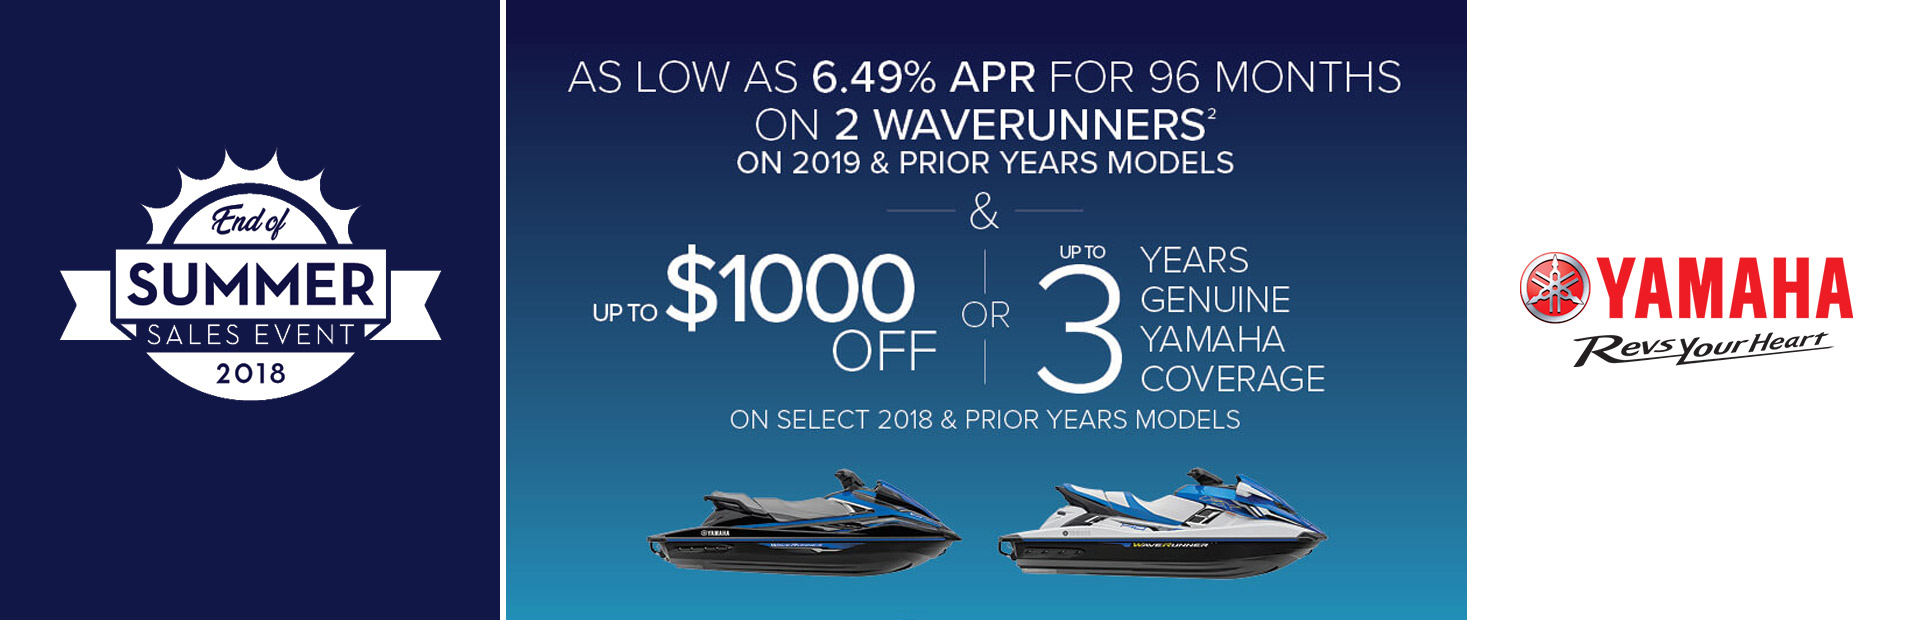 Yamaha: As Low As 6.49% APR For 96 Months